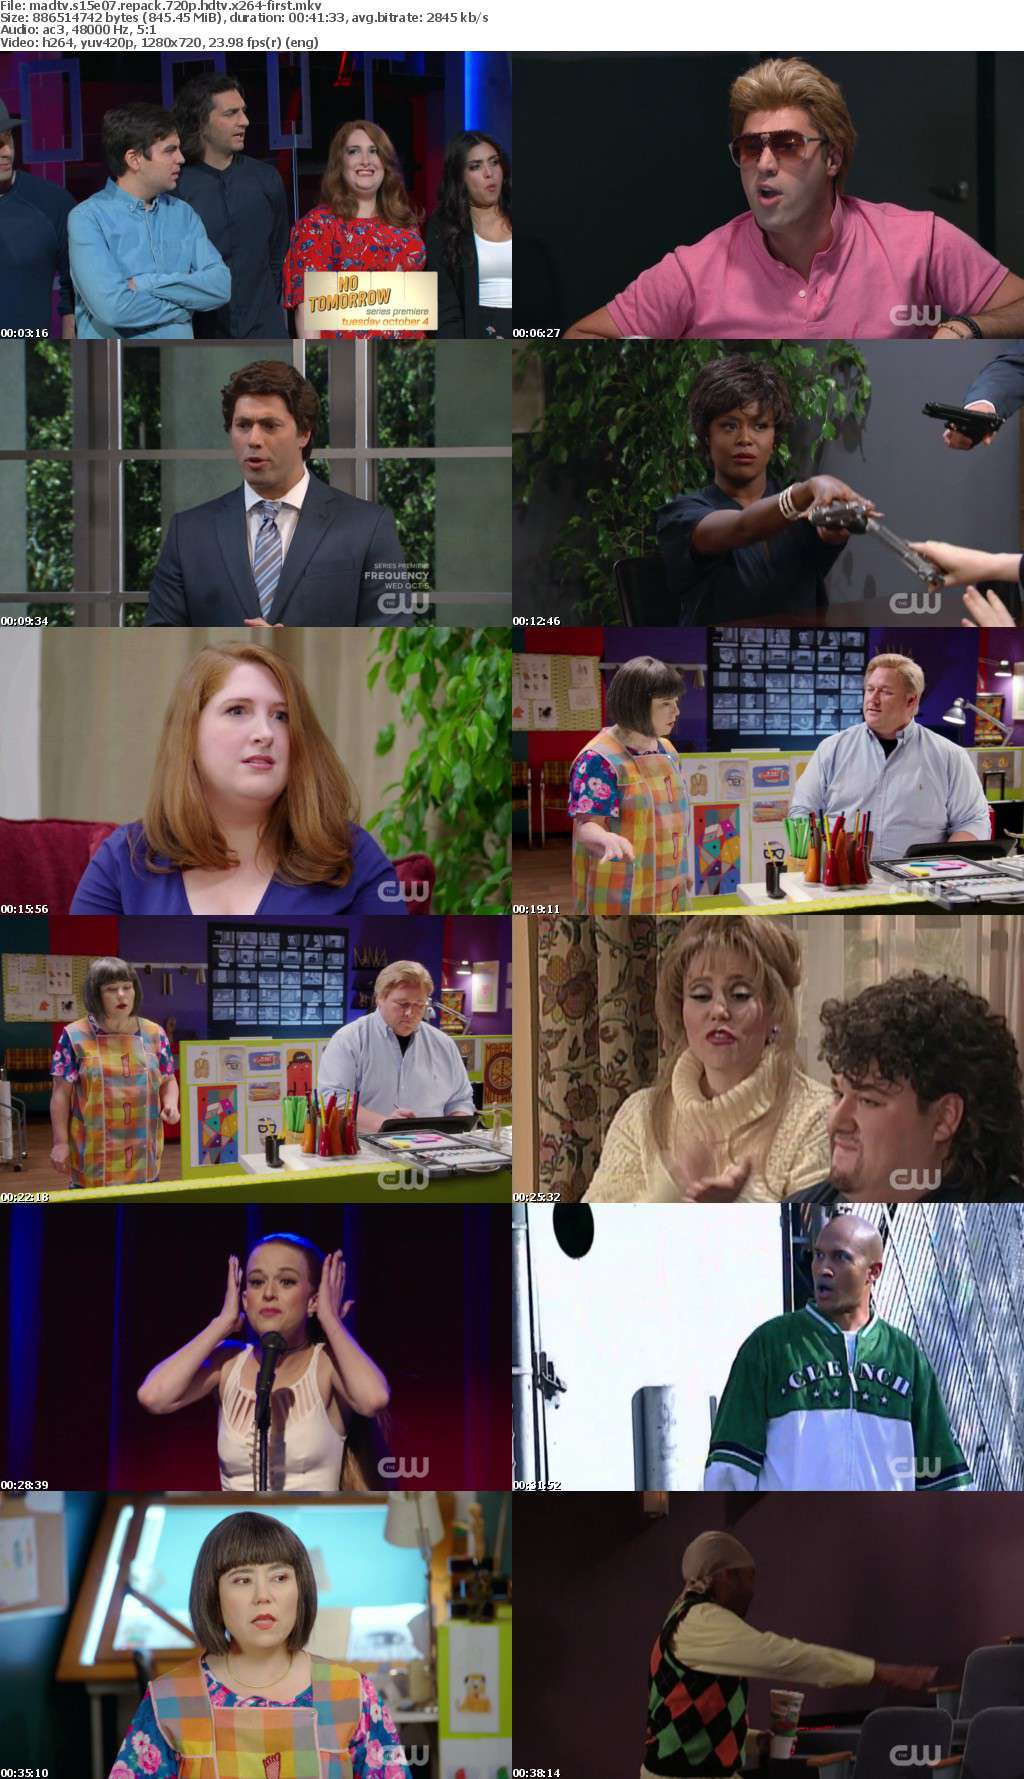 MadTV S15E07 REPACK 720p HDTV x264-FIRST